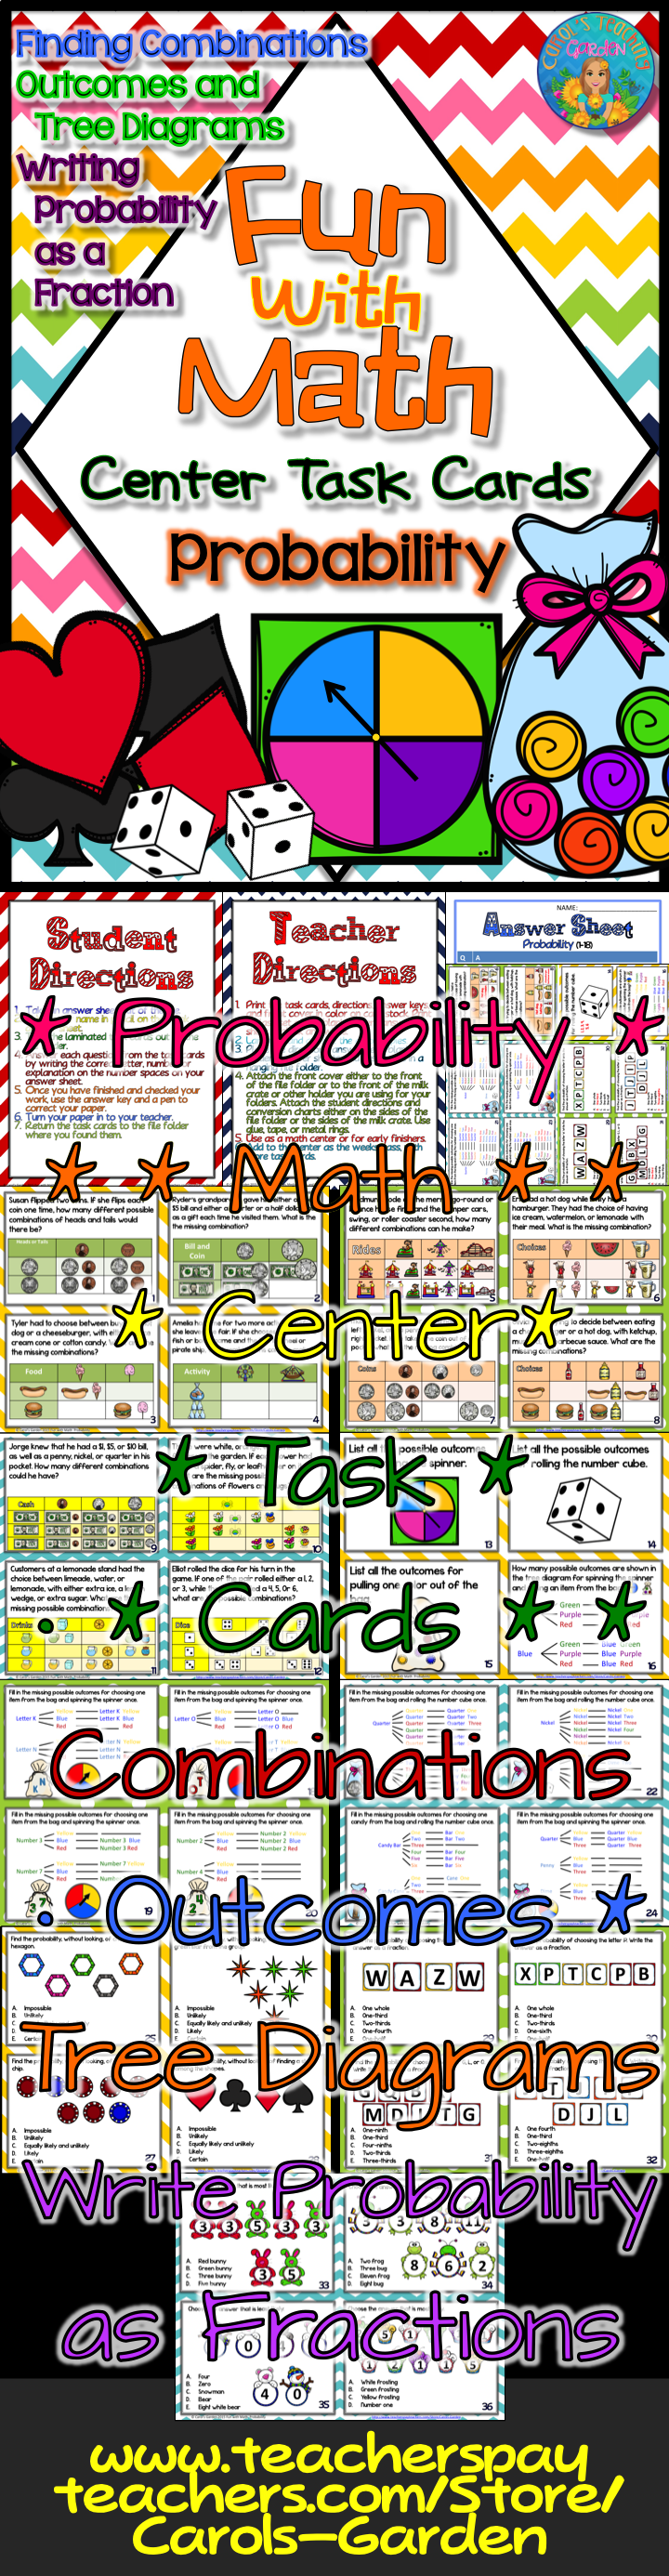 Fun with math probability task cards pinterest maths and school probability task cards for 4th and fifth grade math centers includes finding outcomes tree diagrams likelihood of events and writing probability as a ccuart Choice Image